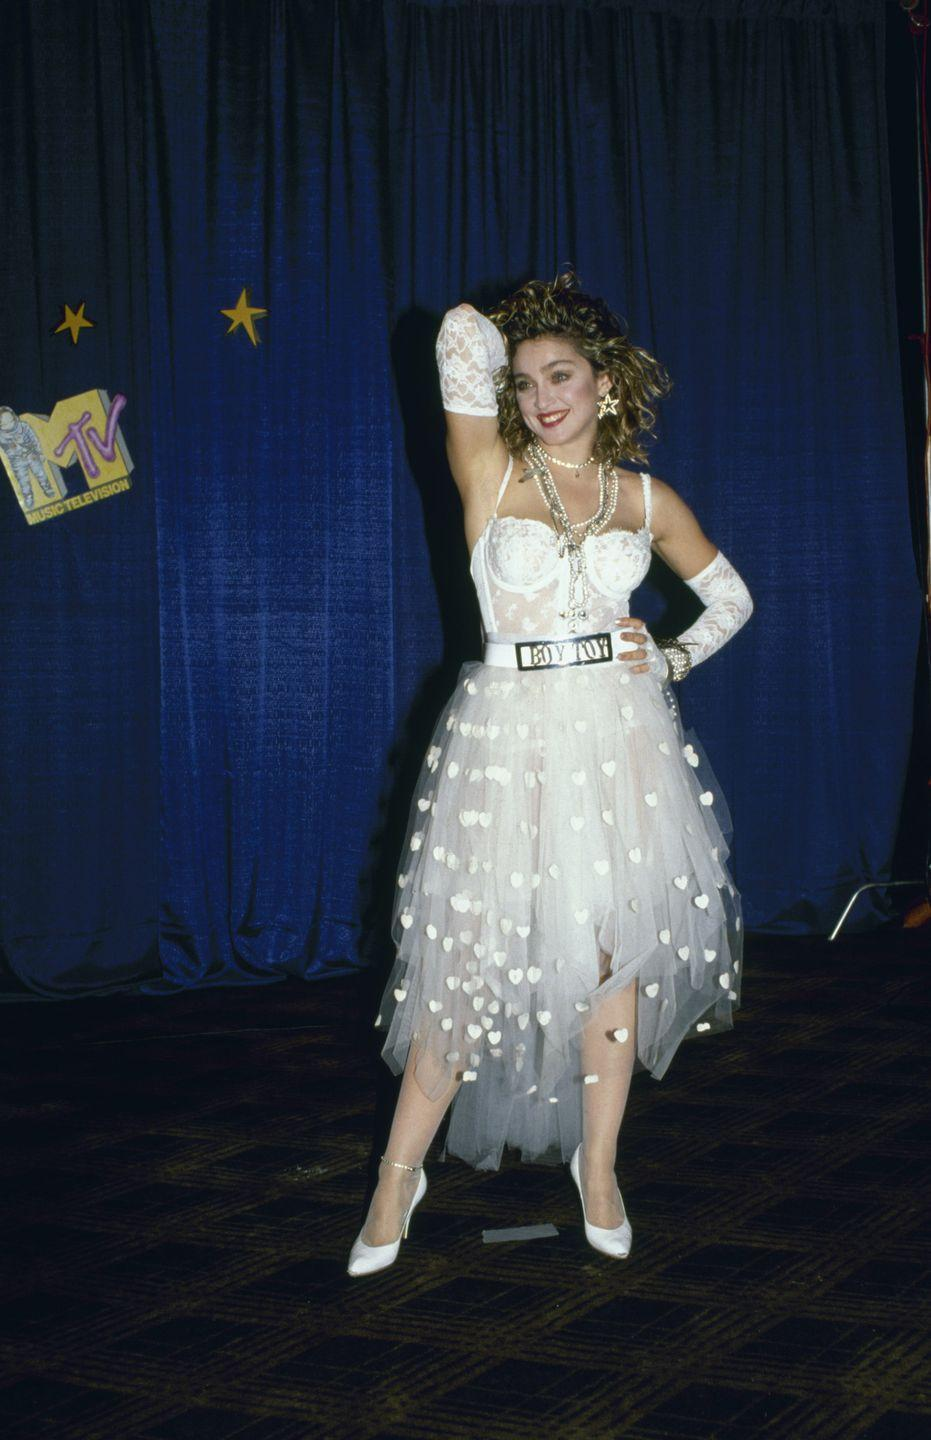 """<p>This bridal lingerie-inspired look is one of Madonna's most iconic style moments of all time. It was especially <a href=""""https://www.yahoo.com/lifestyle/madonnas-like-a-virgin-stylist-recalls-scandalous-1984-vm-as-performance-they-tried-to-destroy-her-that-day-182840304.html?guccounter=1&guce_referrer=aHR0cHM6Ly93d3cuZ29vZ2xlLmNvbS8&guce_referrer_sig=AQAAAGyQyeLyqKsltUy6tqDQSNEgo-FLMBQVt3AvO0qXRbhqIGbAj3u28acH55sFQlHq4uNGdEI9Nh3l2AOunFElqxwu8VETDldTFkAWfXIcx-wZn448IxXA9omQFY4ogJX1viN9BUqfW3OW3sczfCZCVWK_hKDDoagJEkCzR2dMETY8"""" data-ylk=""""slk:scandalous because during her 1984 VMAs performance;outcm:mb_qualified_link;_E:mb_qualified_link;ct:story;"""" class=""""link rapid-noclick-resp yahoo-link"""">scandalous because during her 1984 VMAs performance</a>, she ended up rolling around on the floor and plenty of people got a peek at her undergarments. </p>"""